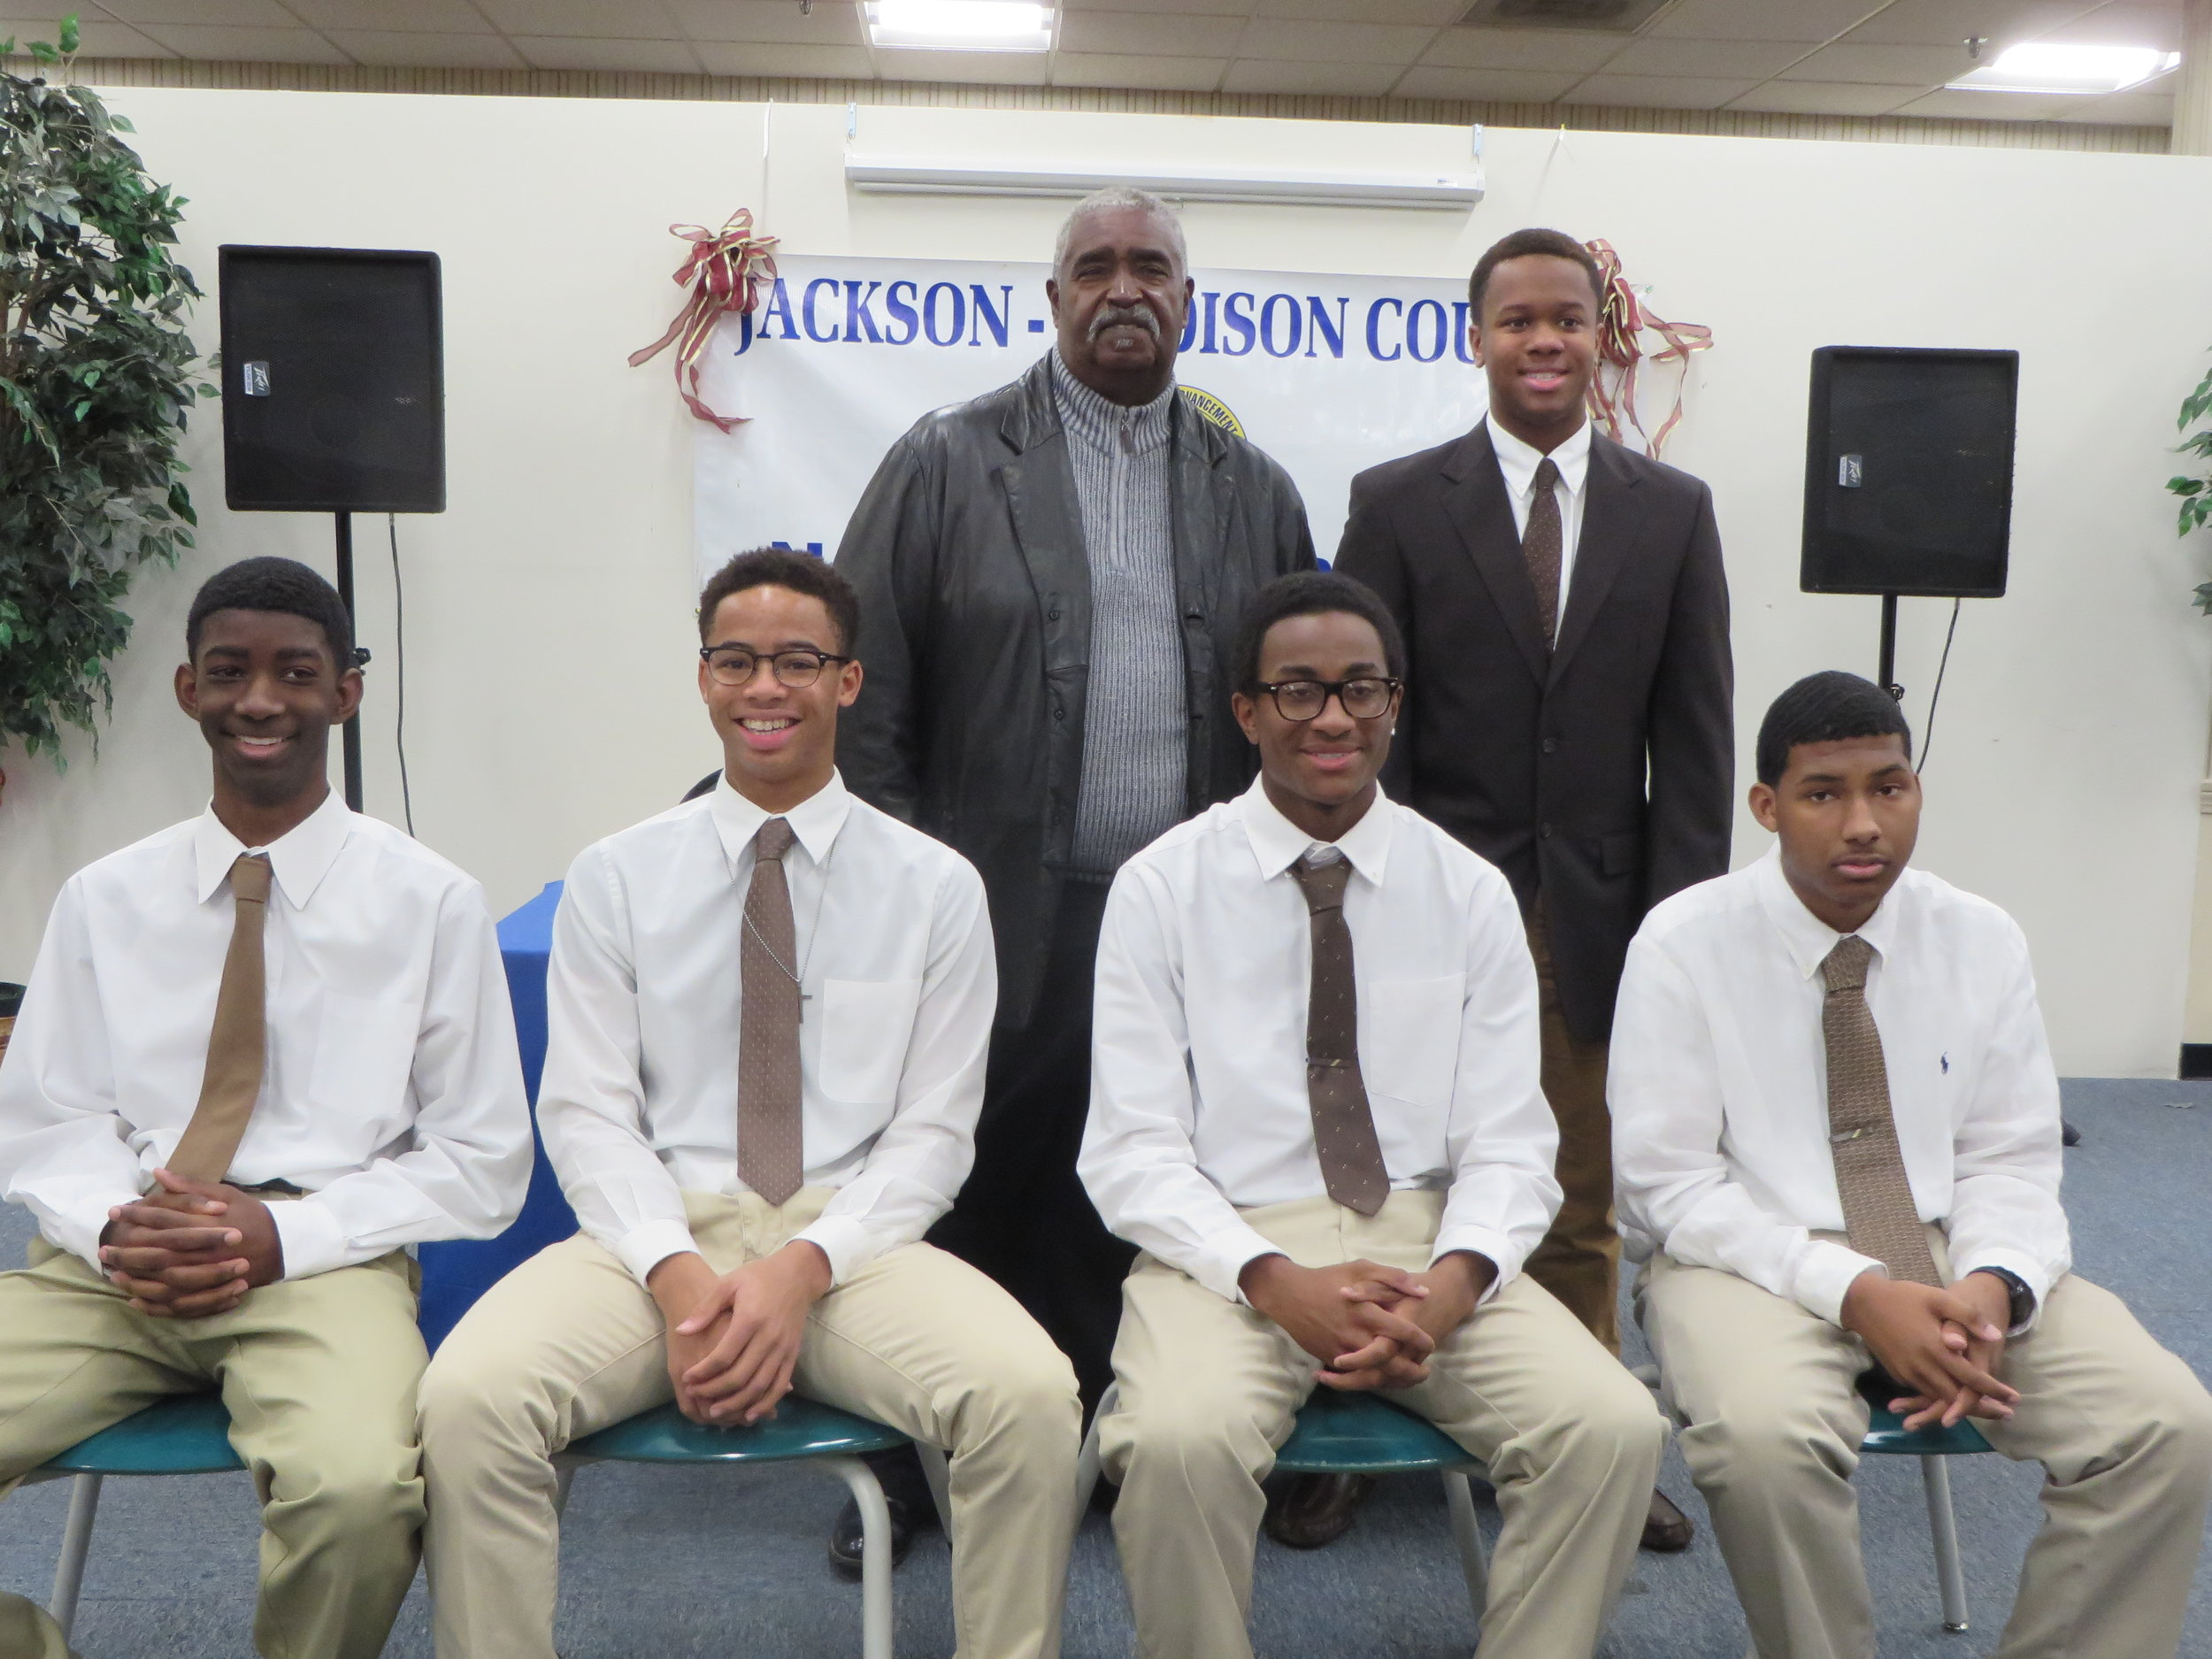 Left to right standing: James Neely, parent and former Kudos Sean Utley  Left to right seated: Kudos Malcolm Arnold, Jonathan Utley, George Berniard, and Jabin Coleman